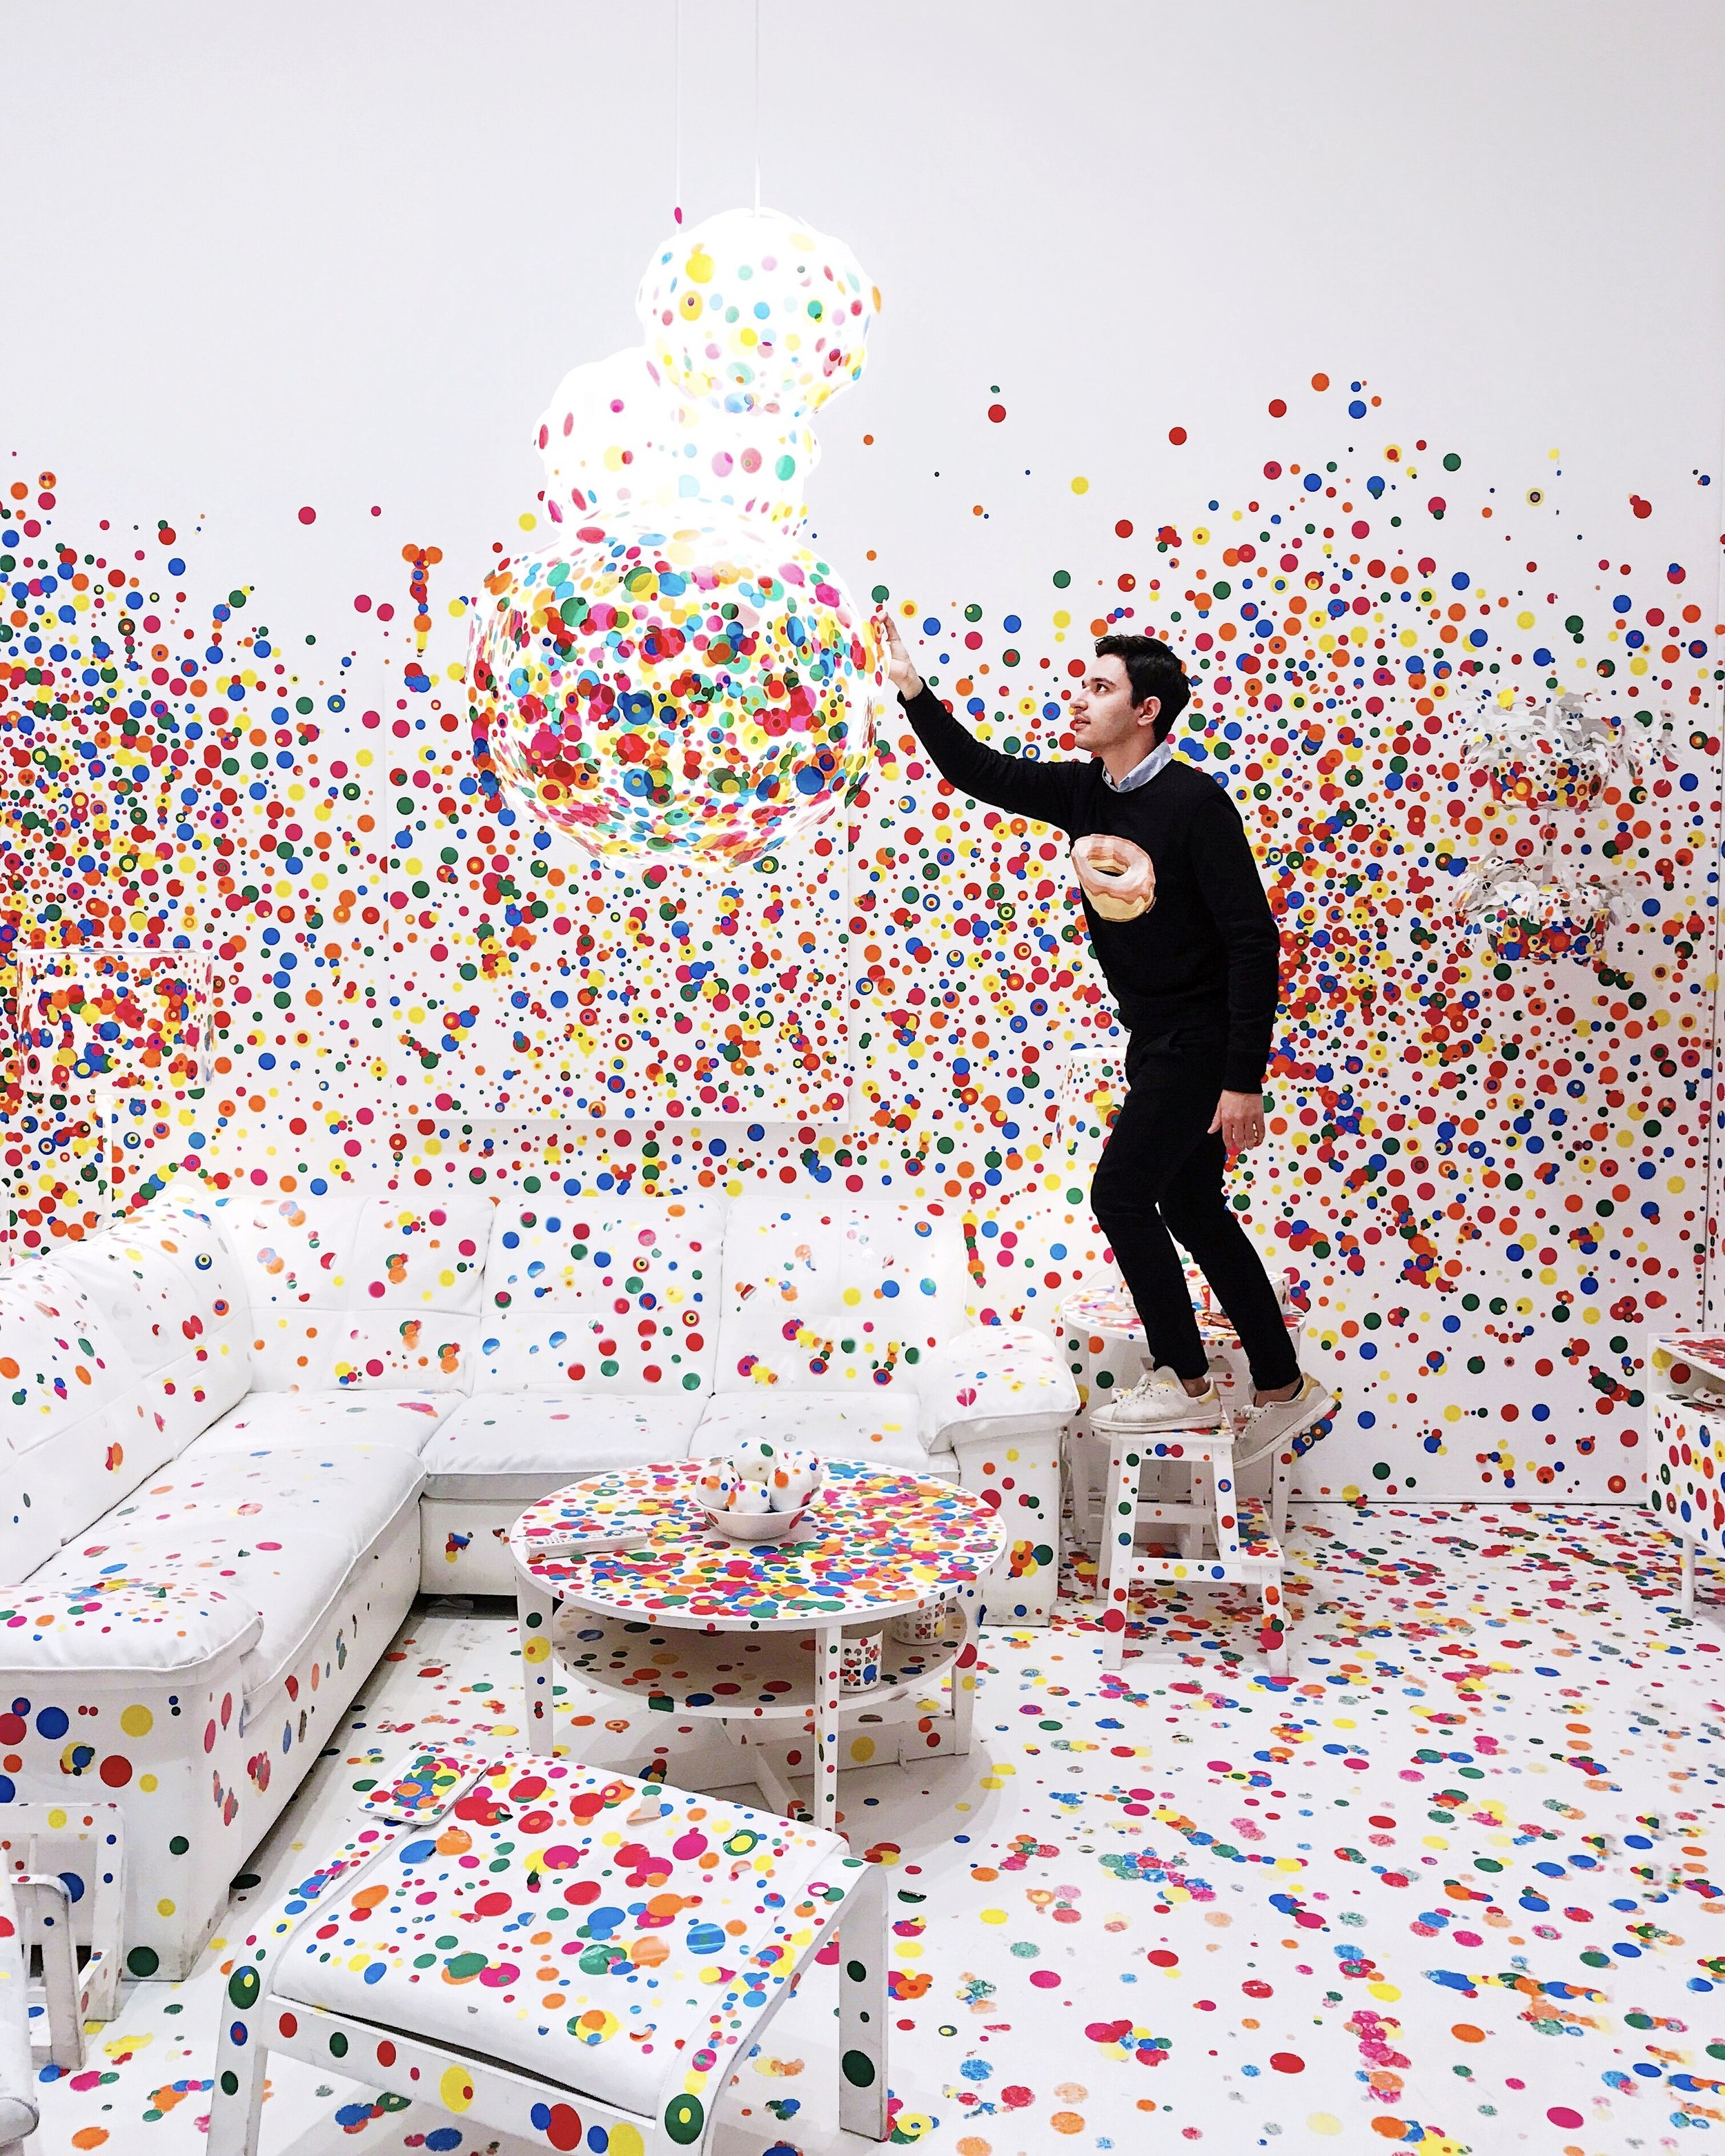 The Obliteration Room